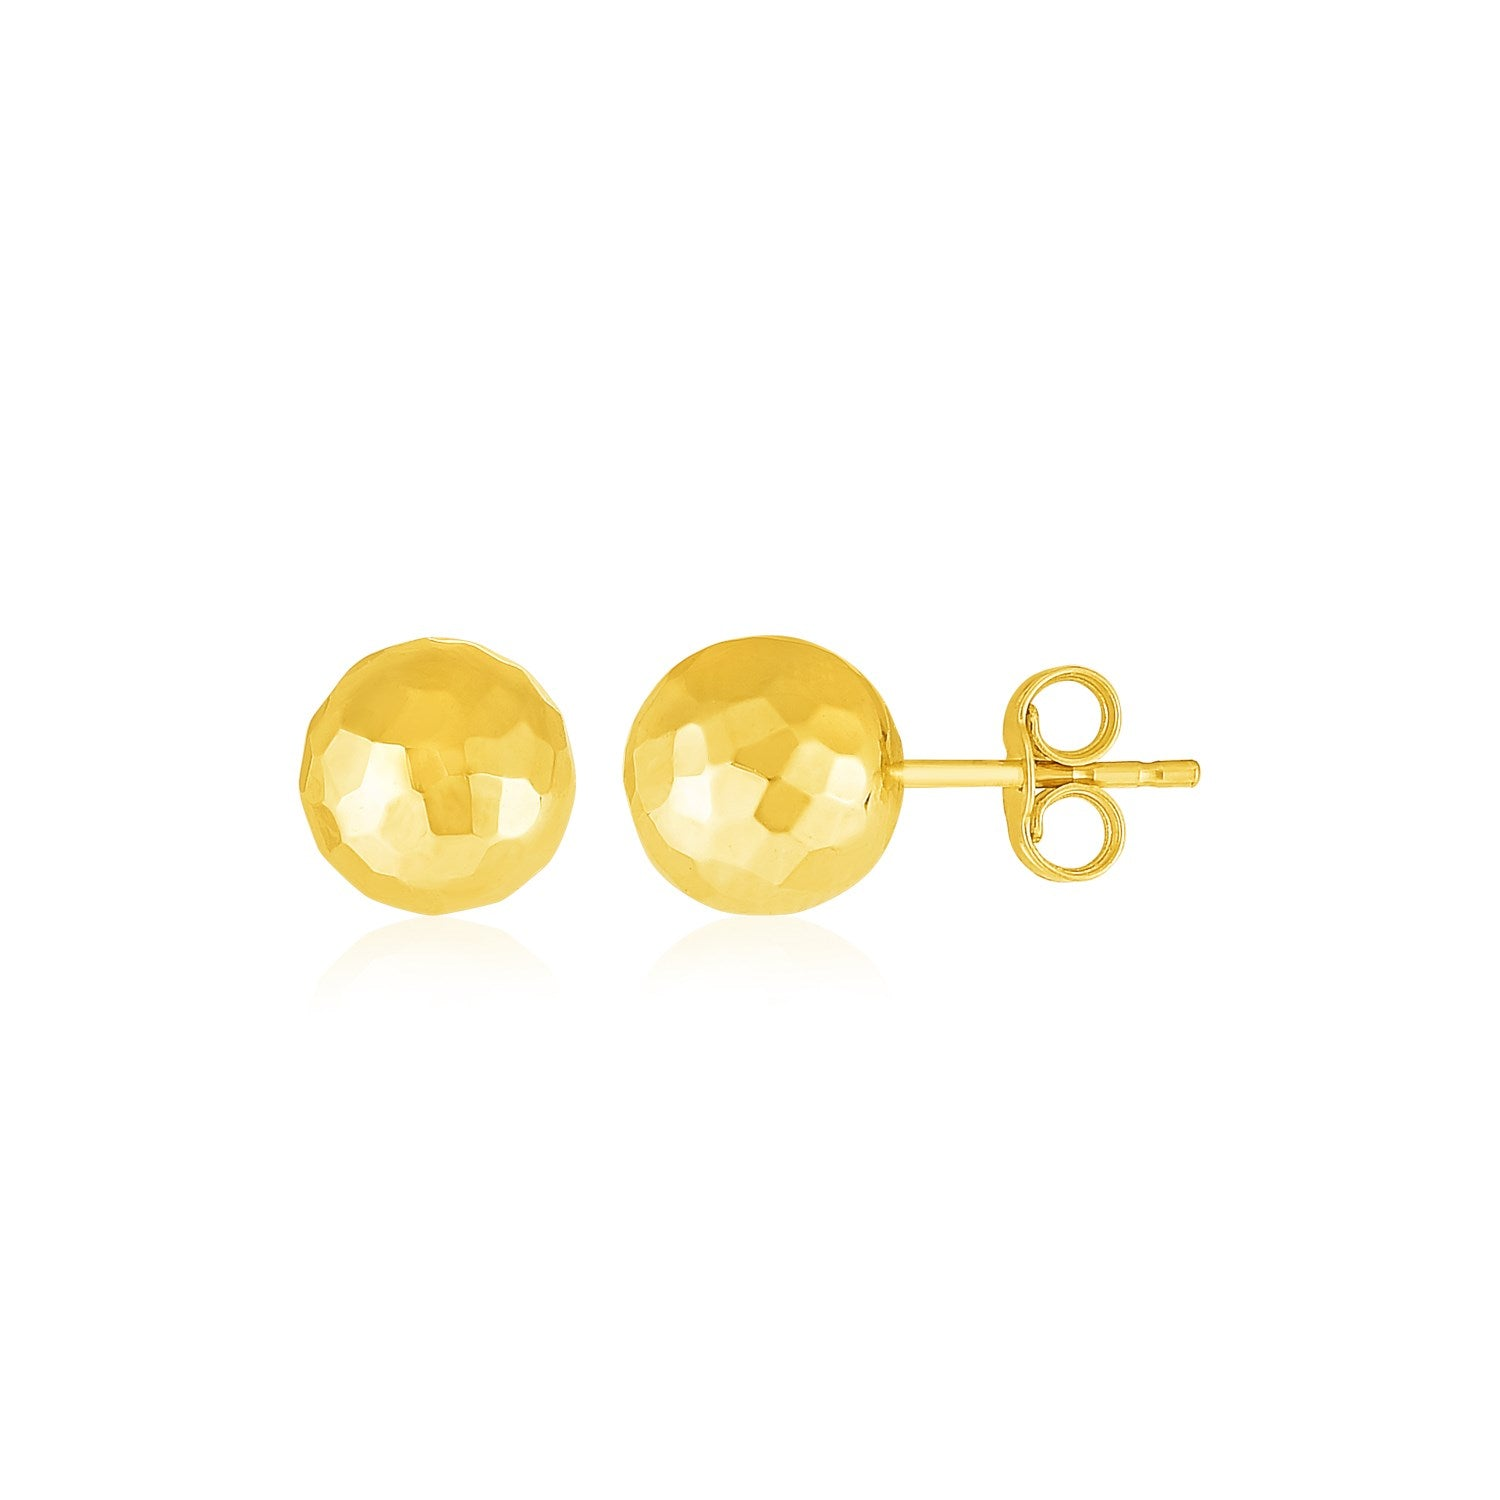 14k Yellow Gold Ball Earrings with Faceted Texture